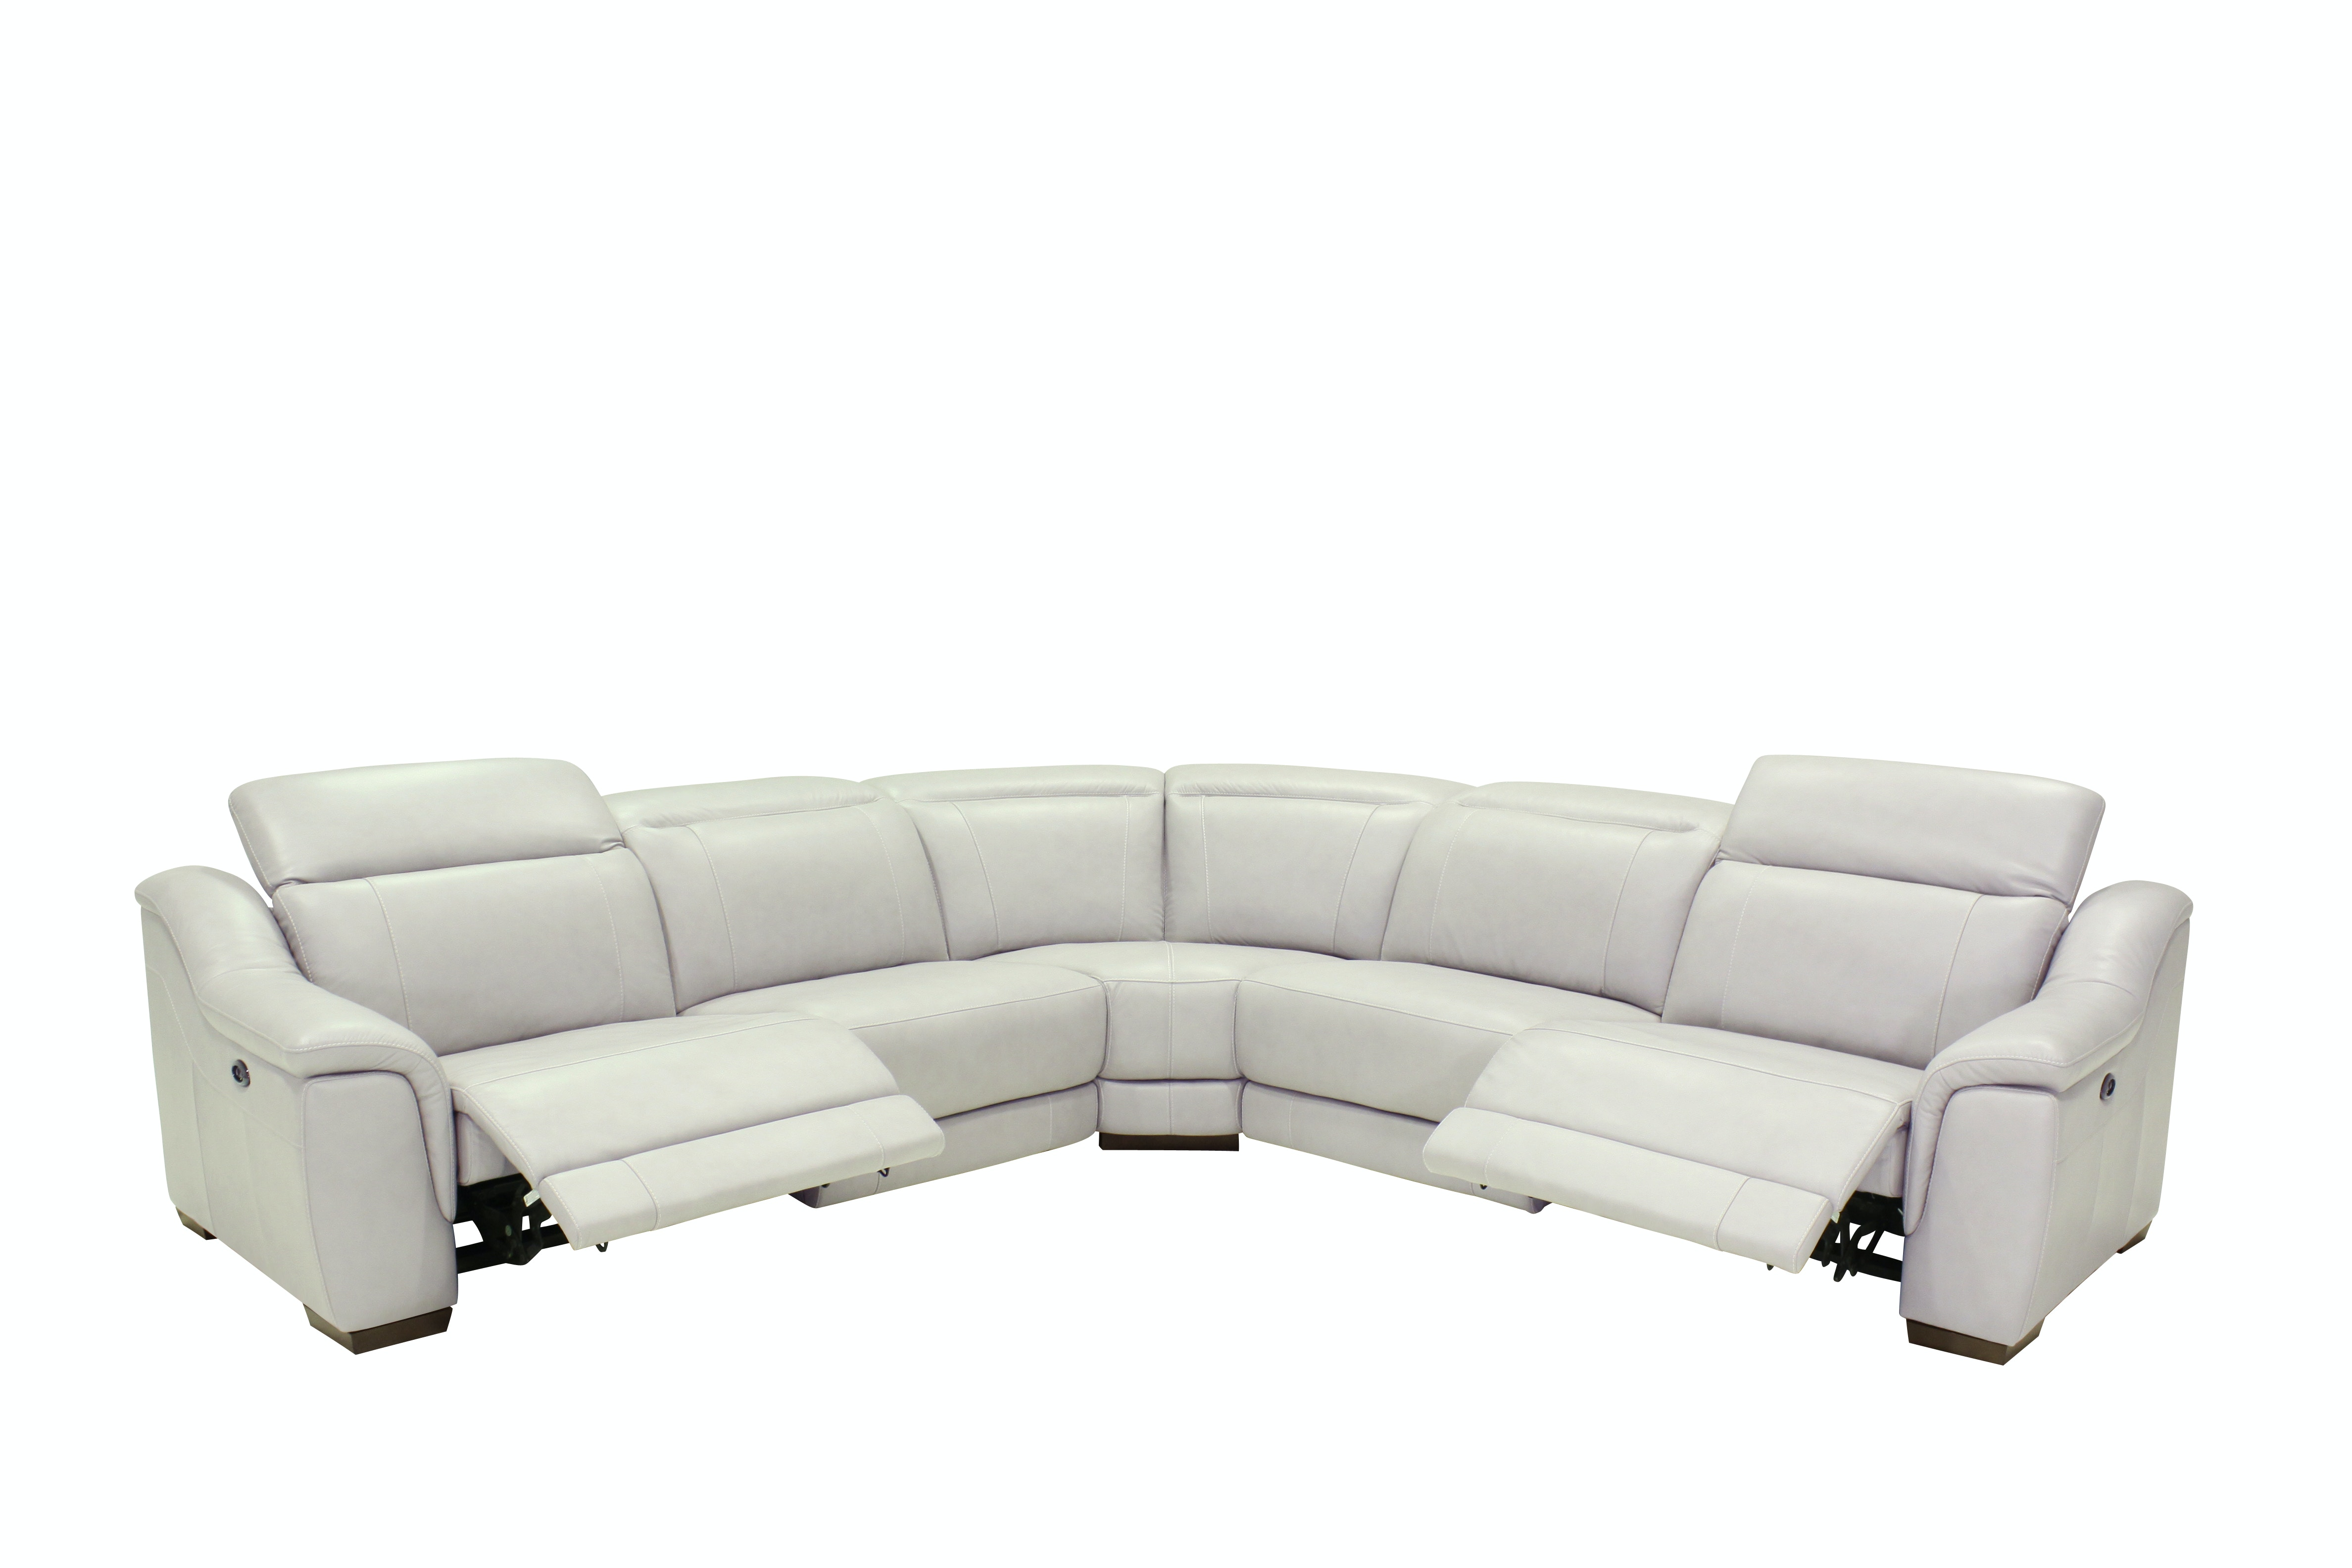 HTL Living Room SECTIONAL 9557 at Norwood Furniture  sc 1 st  Norwood Furniture : htl furniture sectional - Sectionals, Sofas & Couches